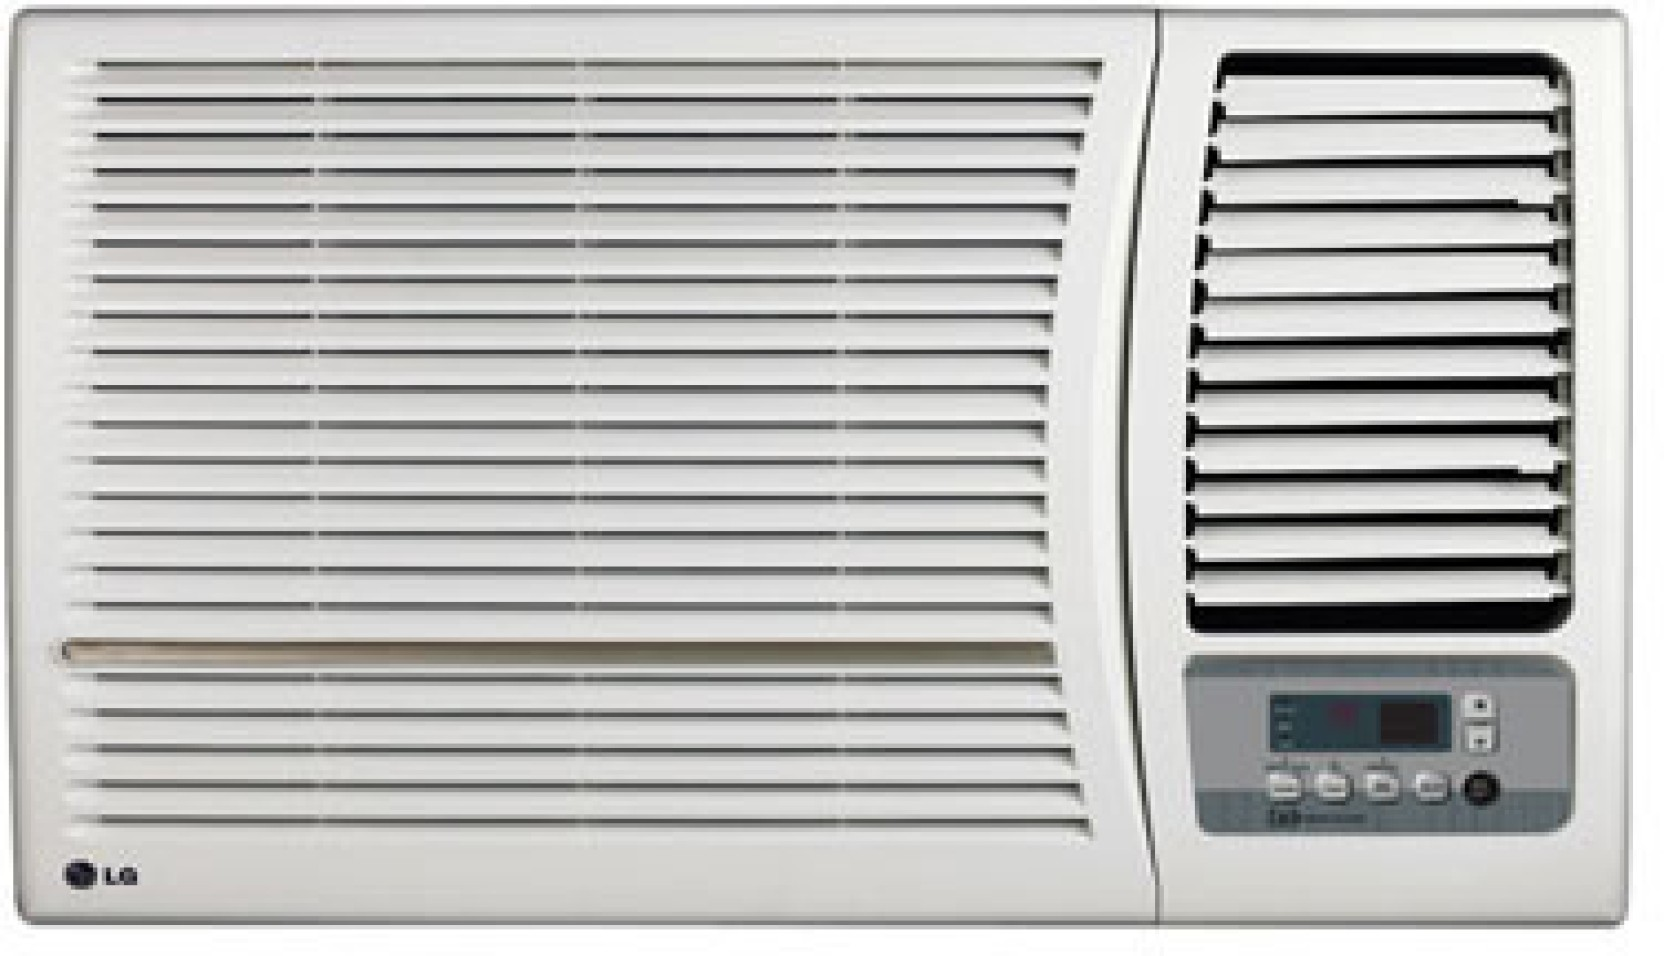 Flipkart.com Buy LG 1 Ton 5 Star Window AC White Online at best  #595145